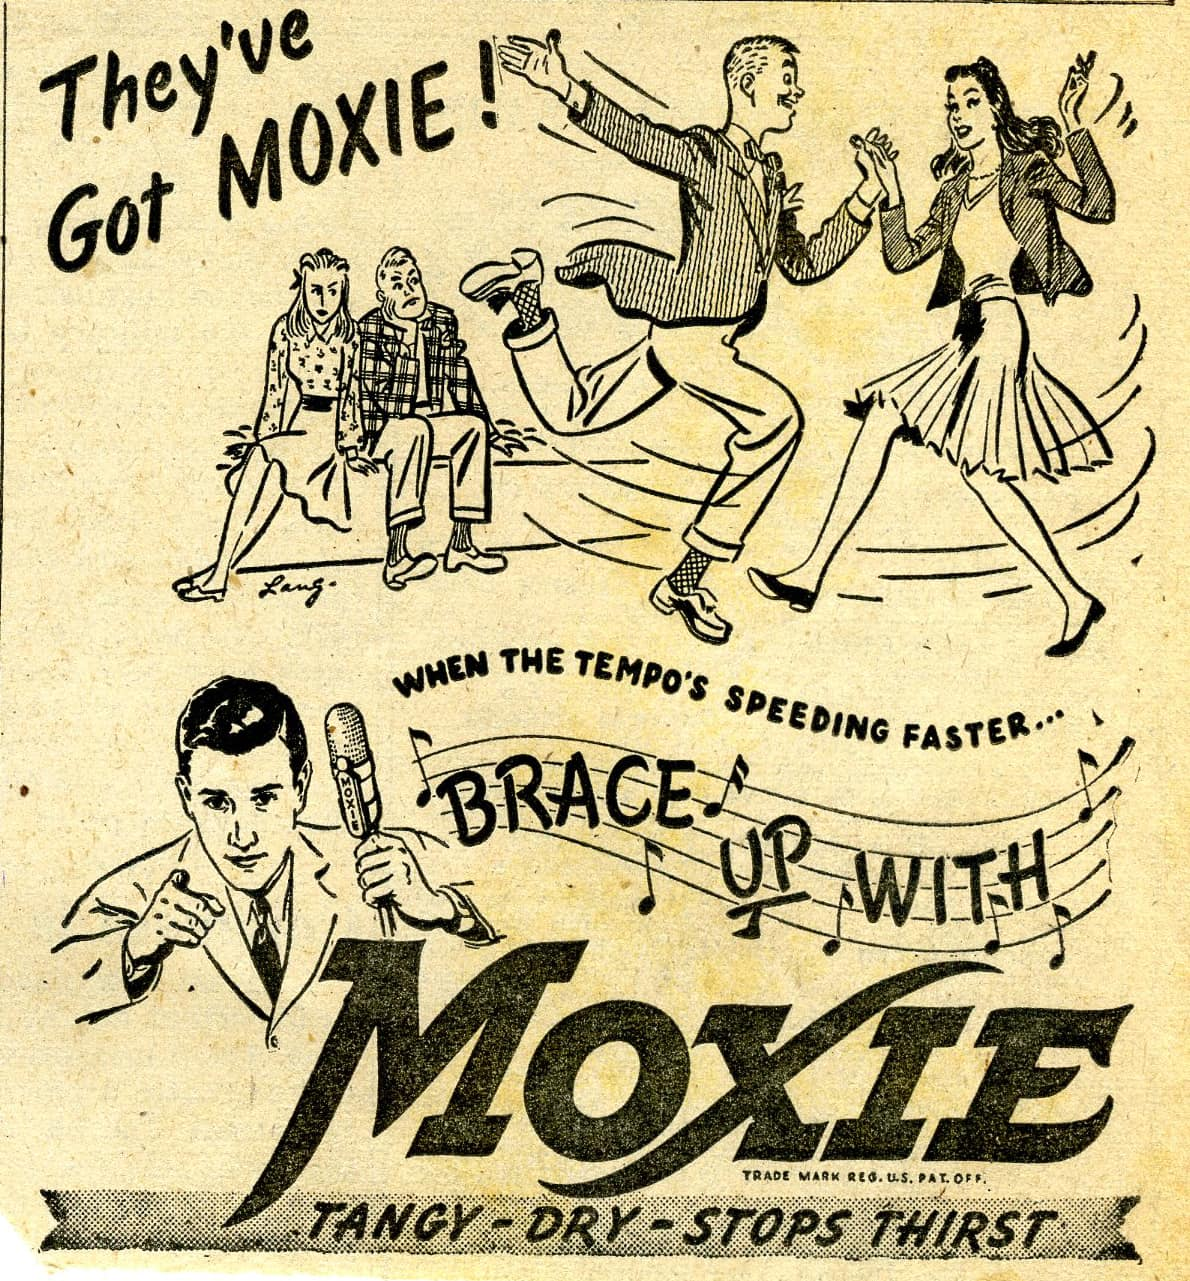 Moxie, Distinctively Different, Coca-Cola